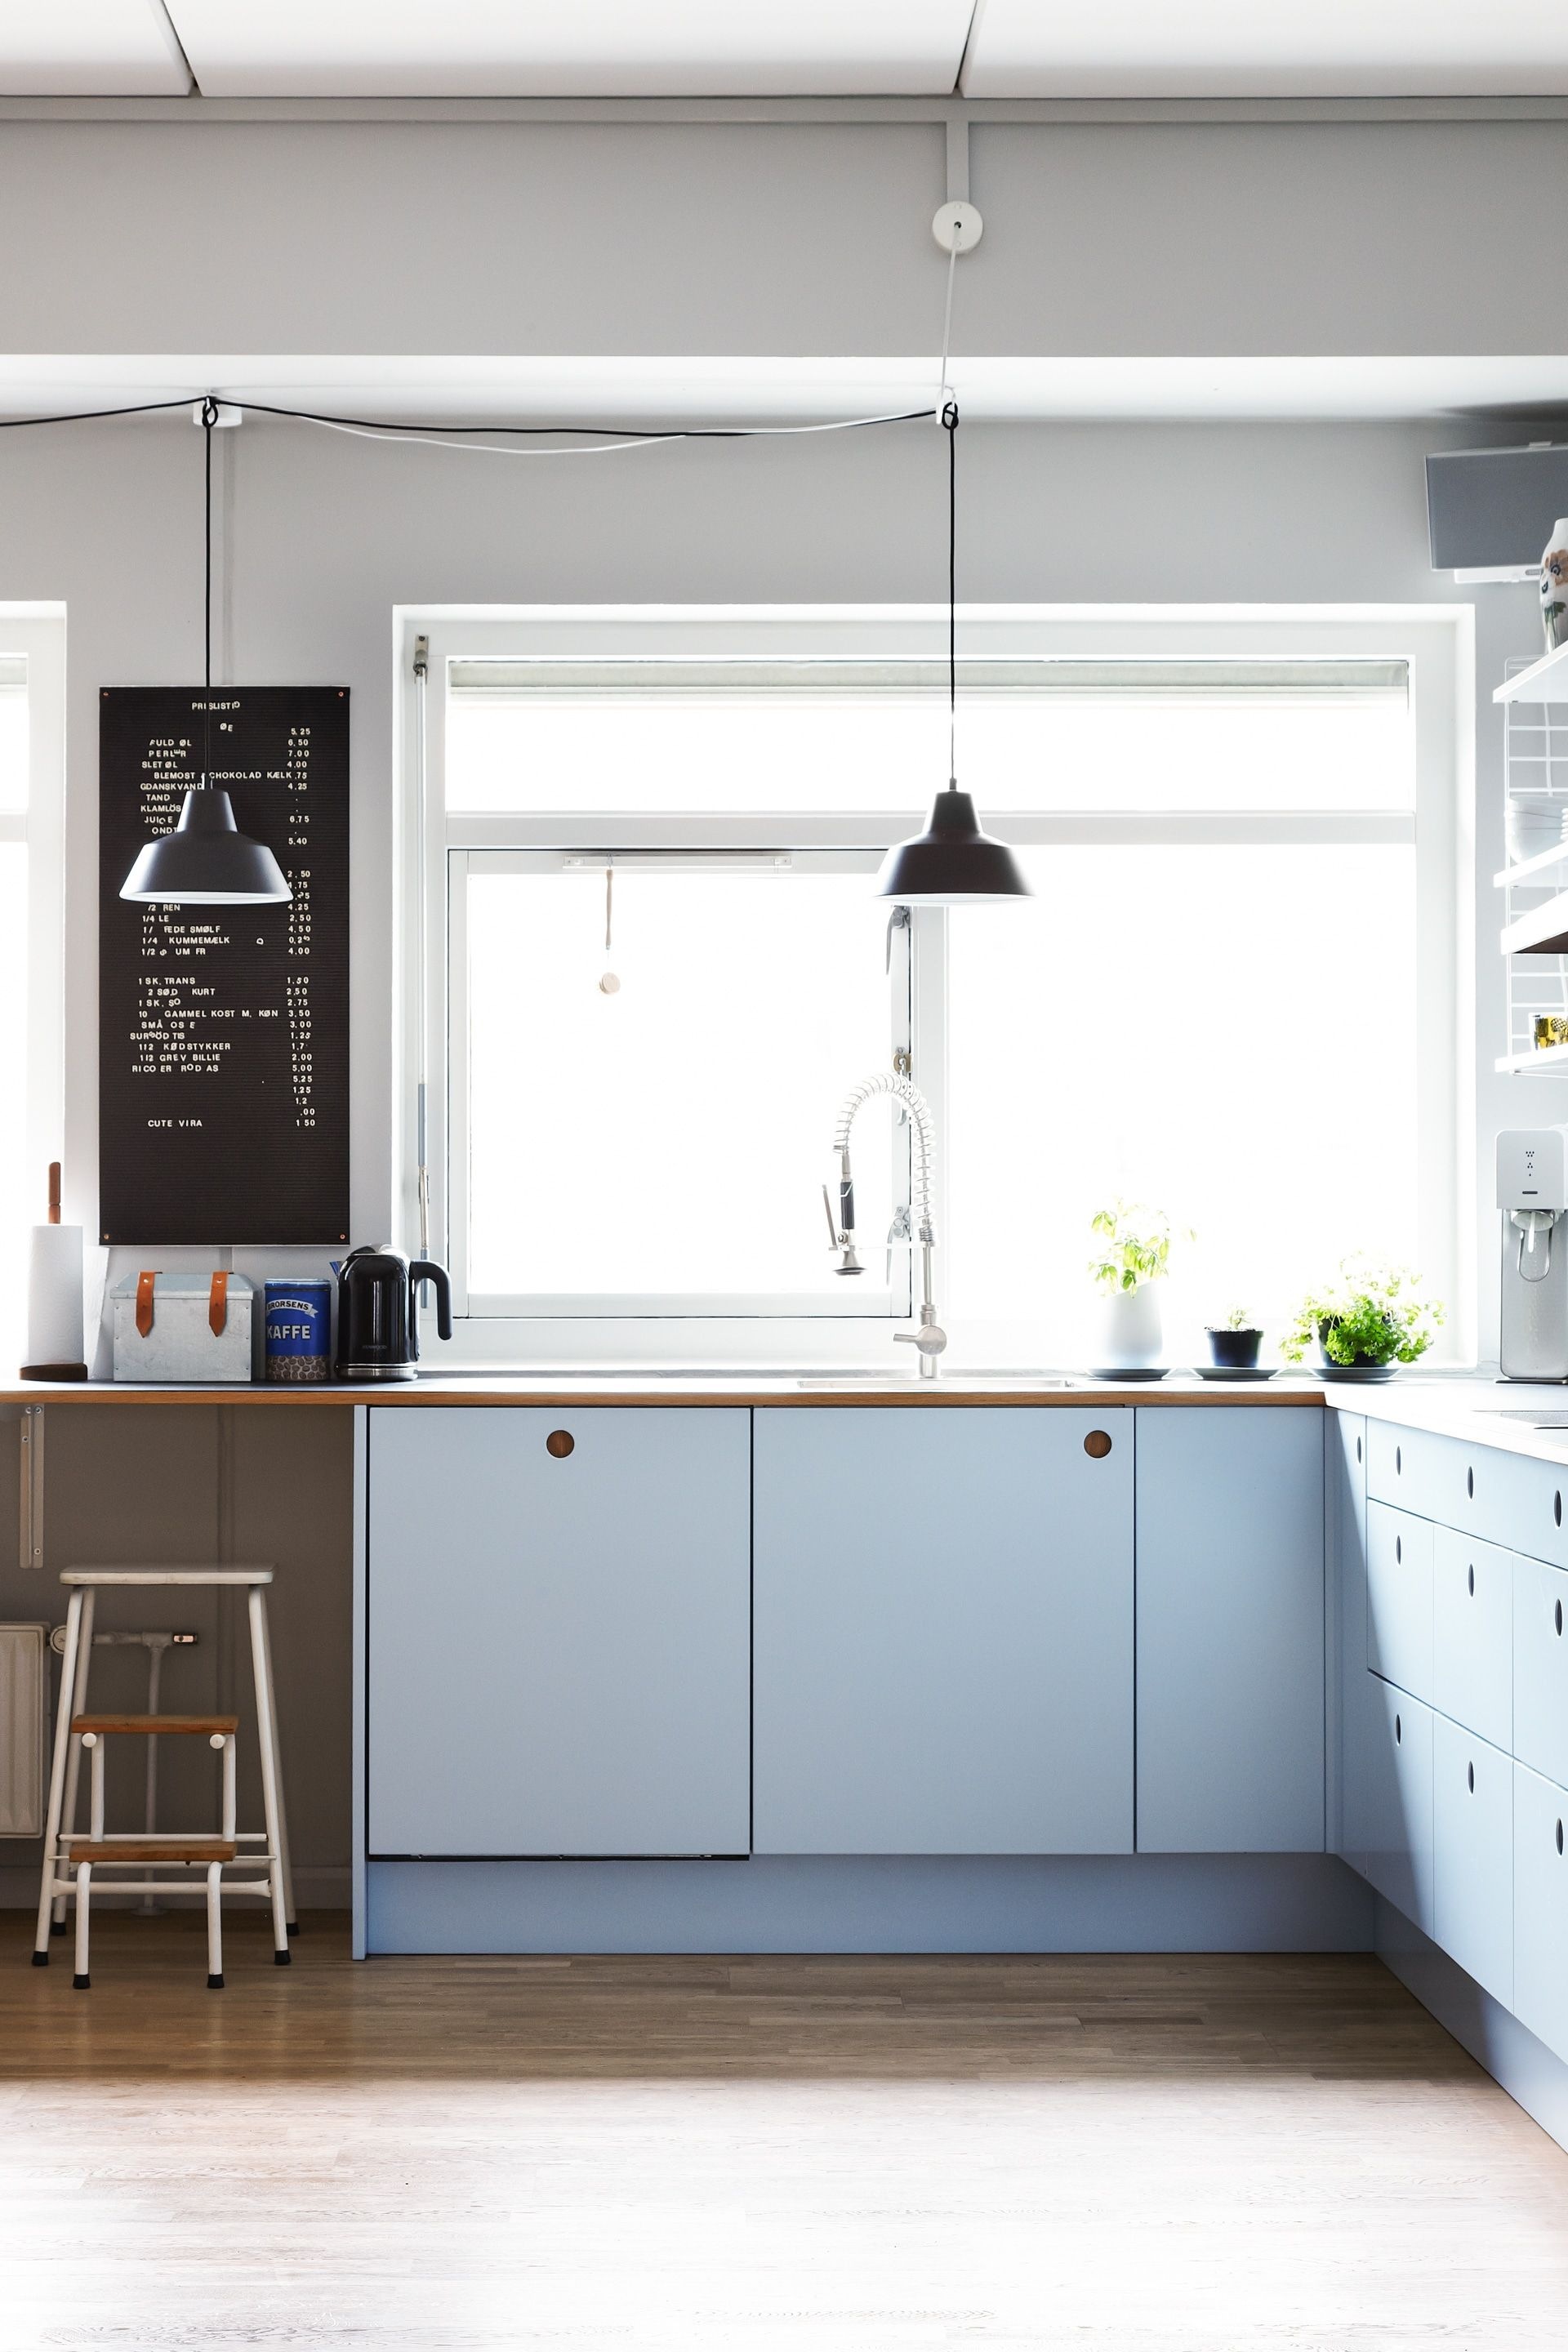 homestory zu besuch bei julie in kopenhagen kitchen interior inspiration. Black Bedroom Furniture Sets. Home Design Ideas